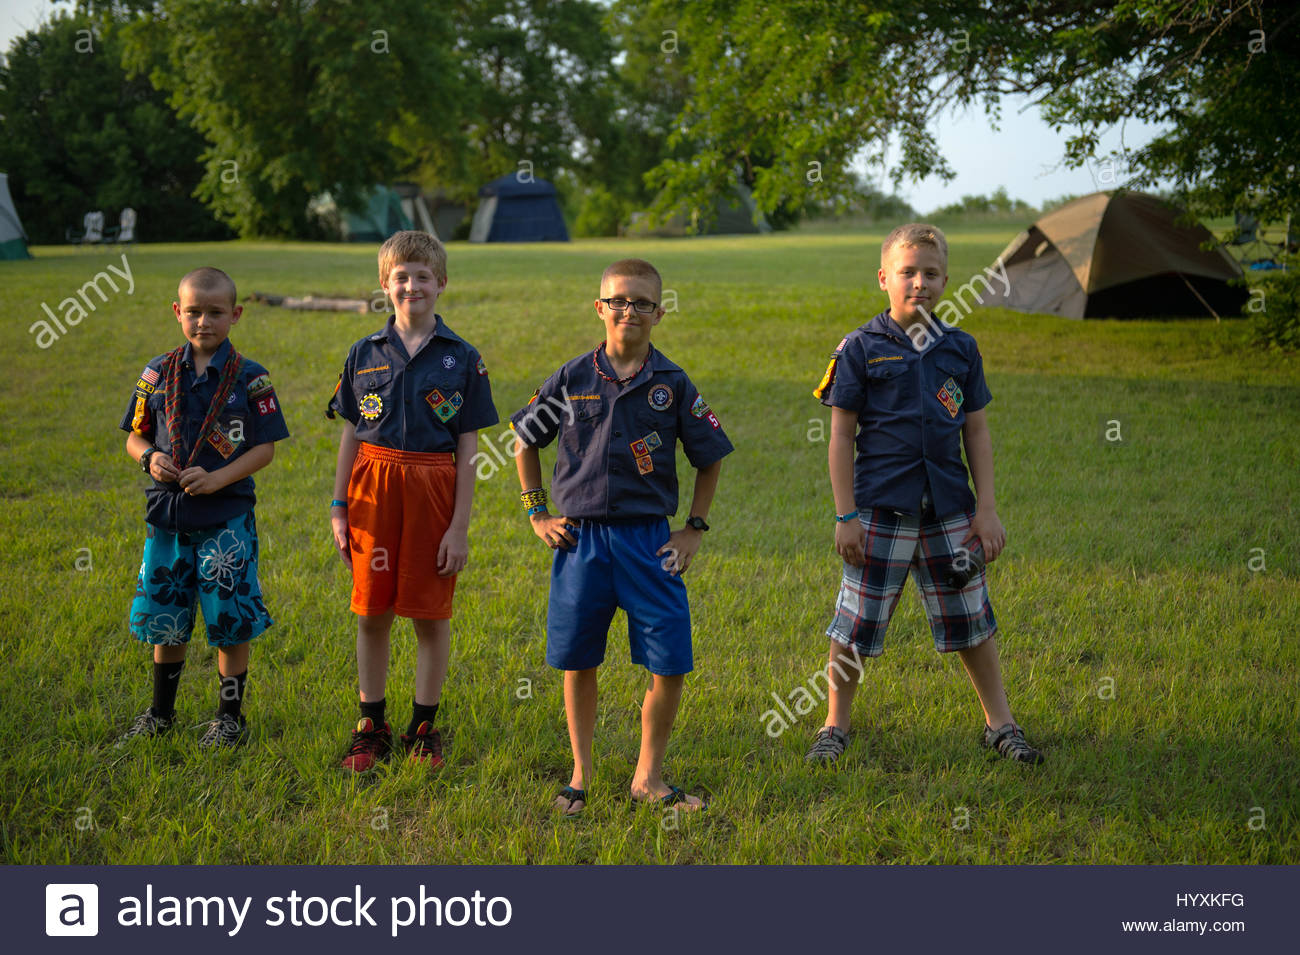 Group of boys in scout camp near Humbolt, Nebraska. - Stock Image